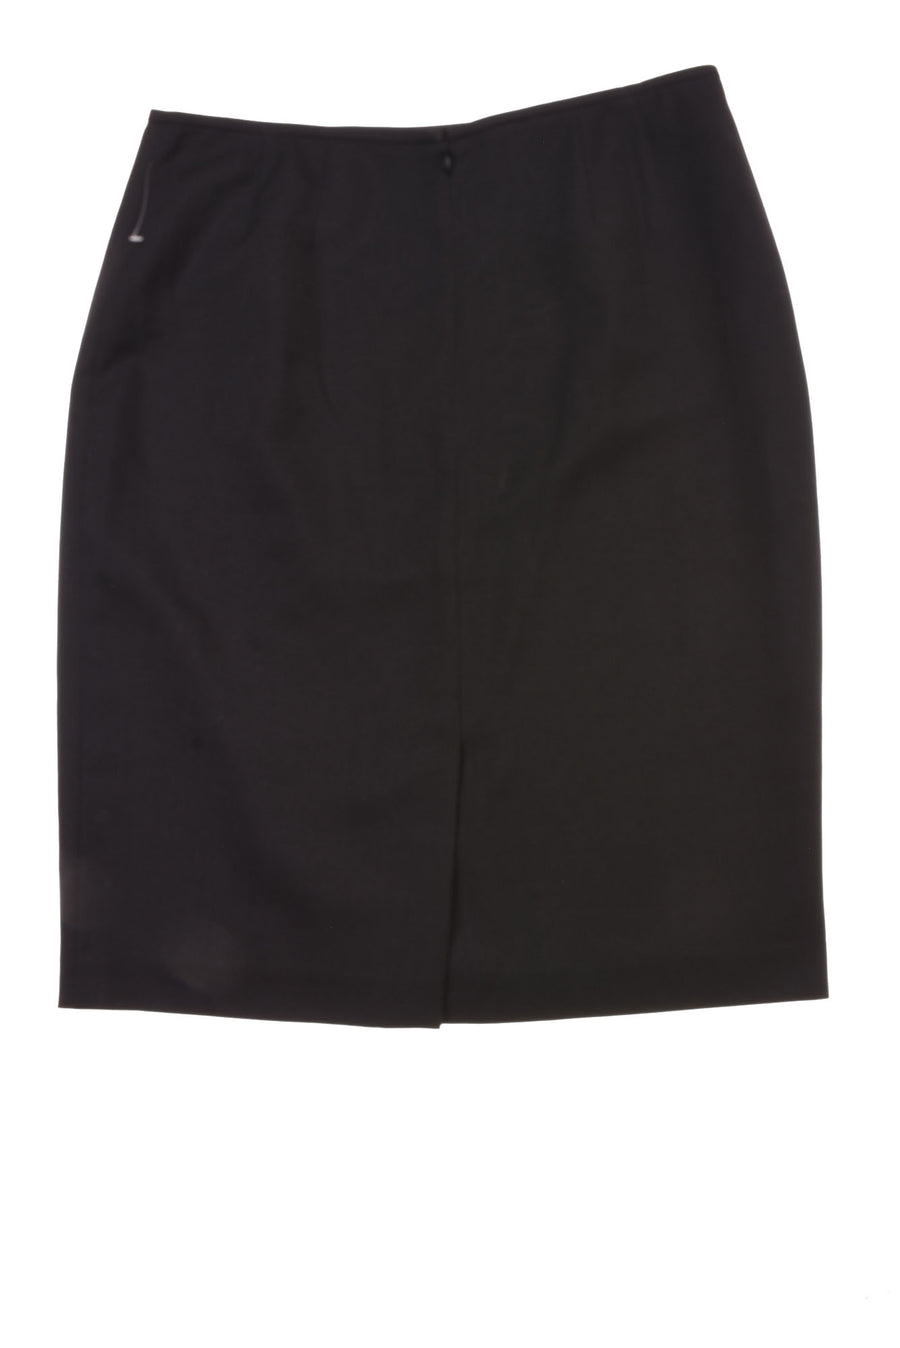 USED Le Suit Women's Skirt  10 Black